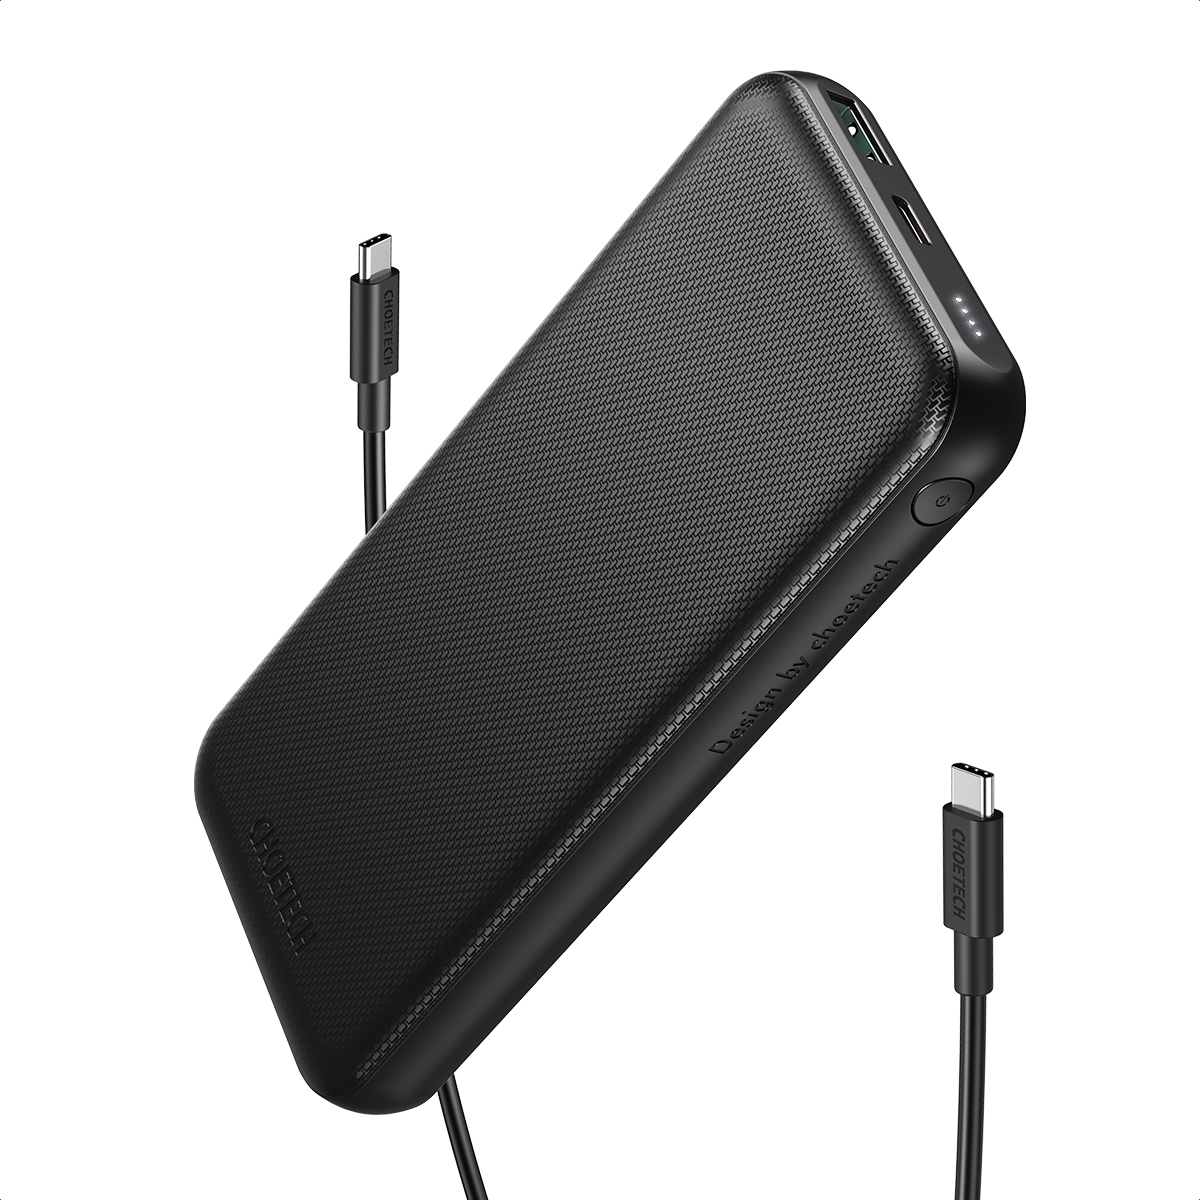 [US Direct] USB-C Power Bank, CHOETECH PD 18W 10000mAh Portable Charger QC 3.0 Fast Charger External Battery Pack for iPhone SE 2020/11/11 Pro/11 Pro Max/XS, iPad Pro, Galaxy S20 Ultra, Huawei, Nintendo Switch 13*2*18